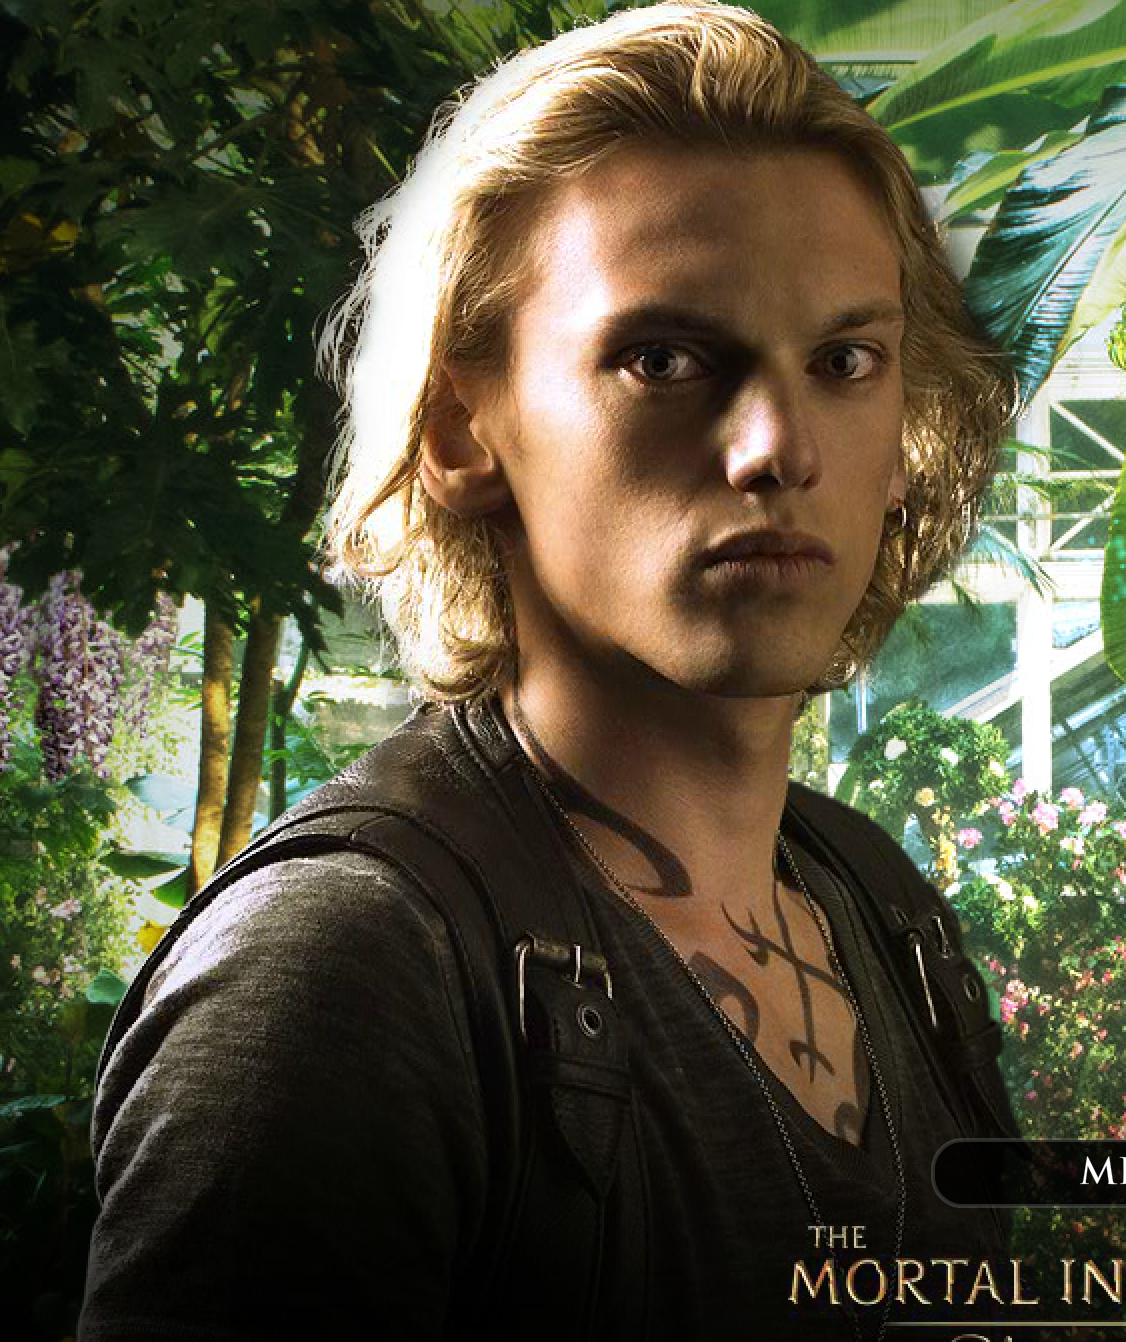 City Of Bones The Mortal Instruments He S Perfect For The Role Like You Don T Understand Jamie Campbell Bower The Mortal Instruments Jamie Campbell